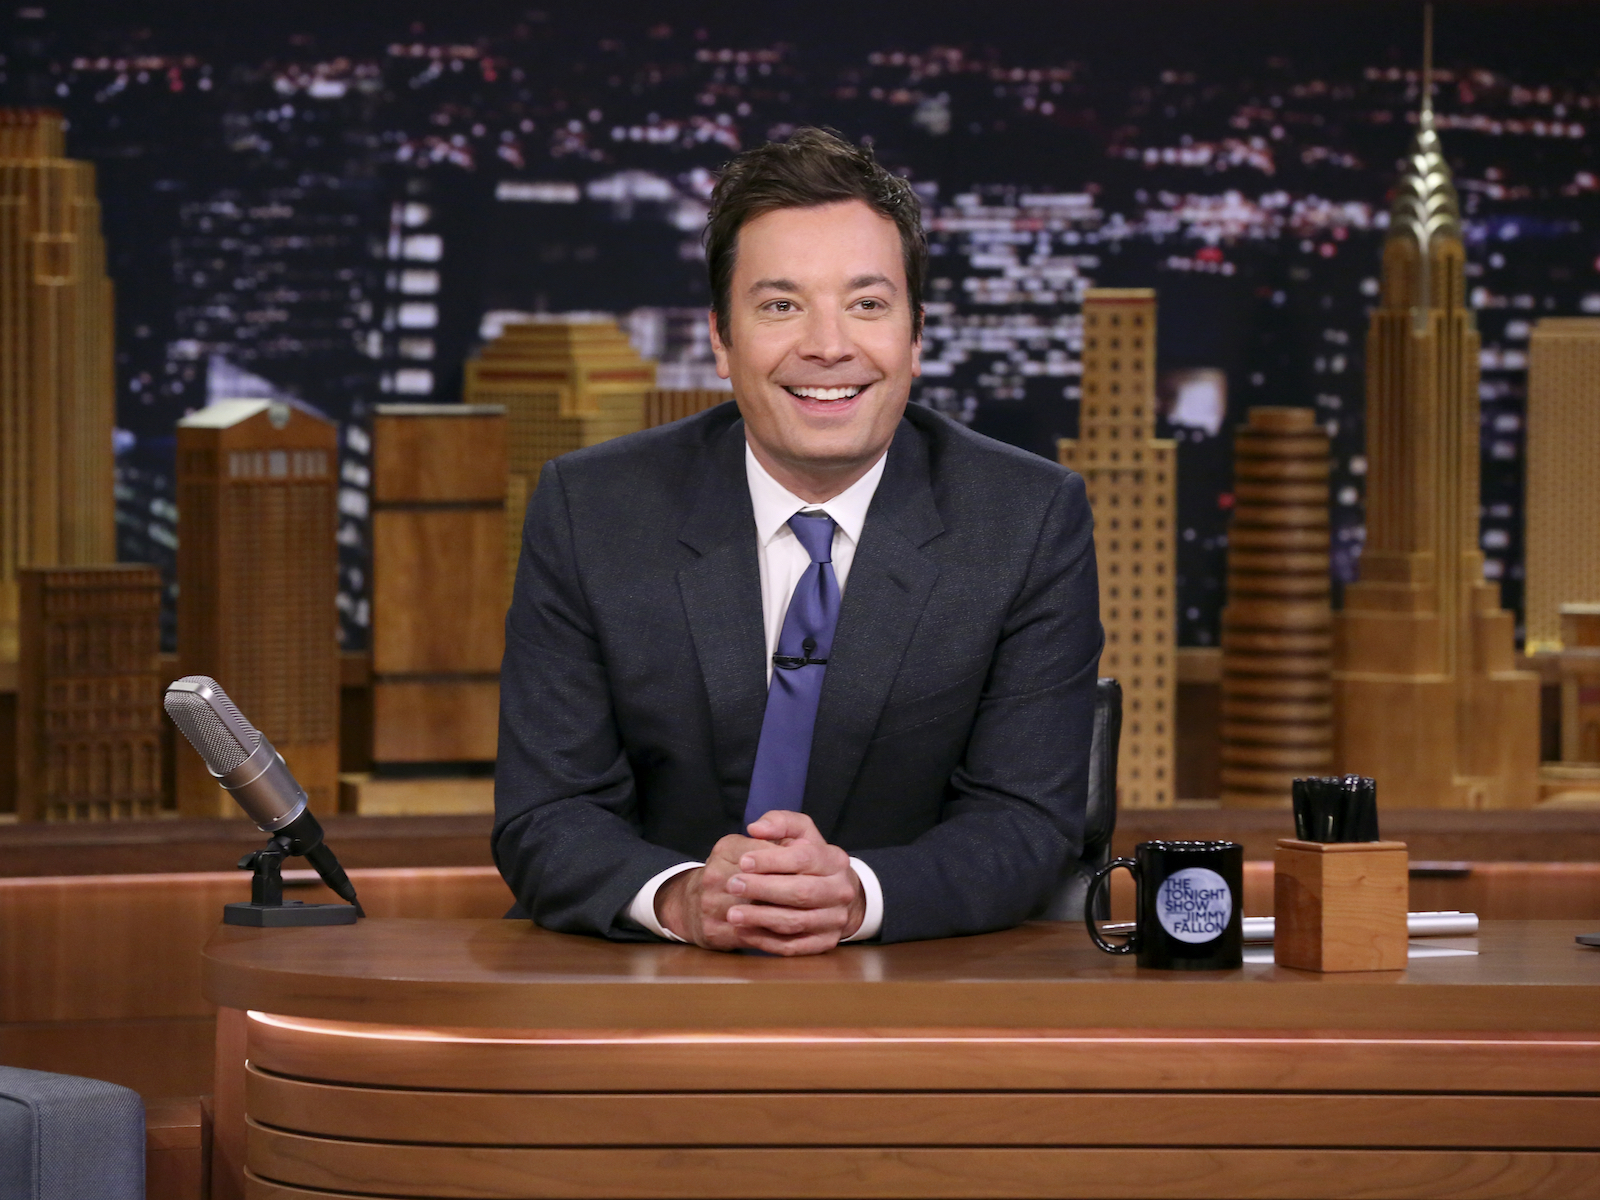 Jimmy Fallon Threw a Surprise Dinner Party With Karaoke and 'Salmon Cheesesteaks'